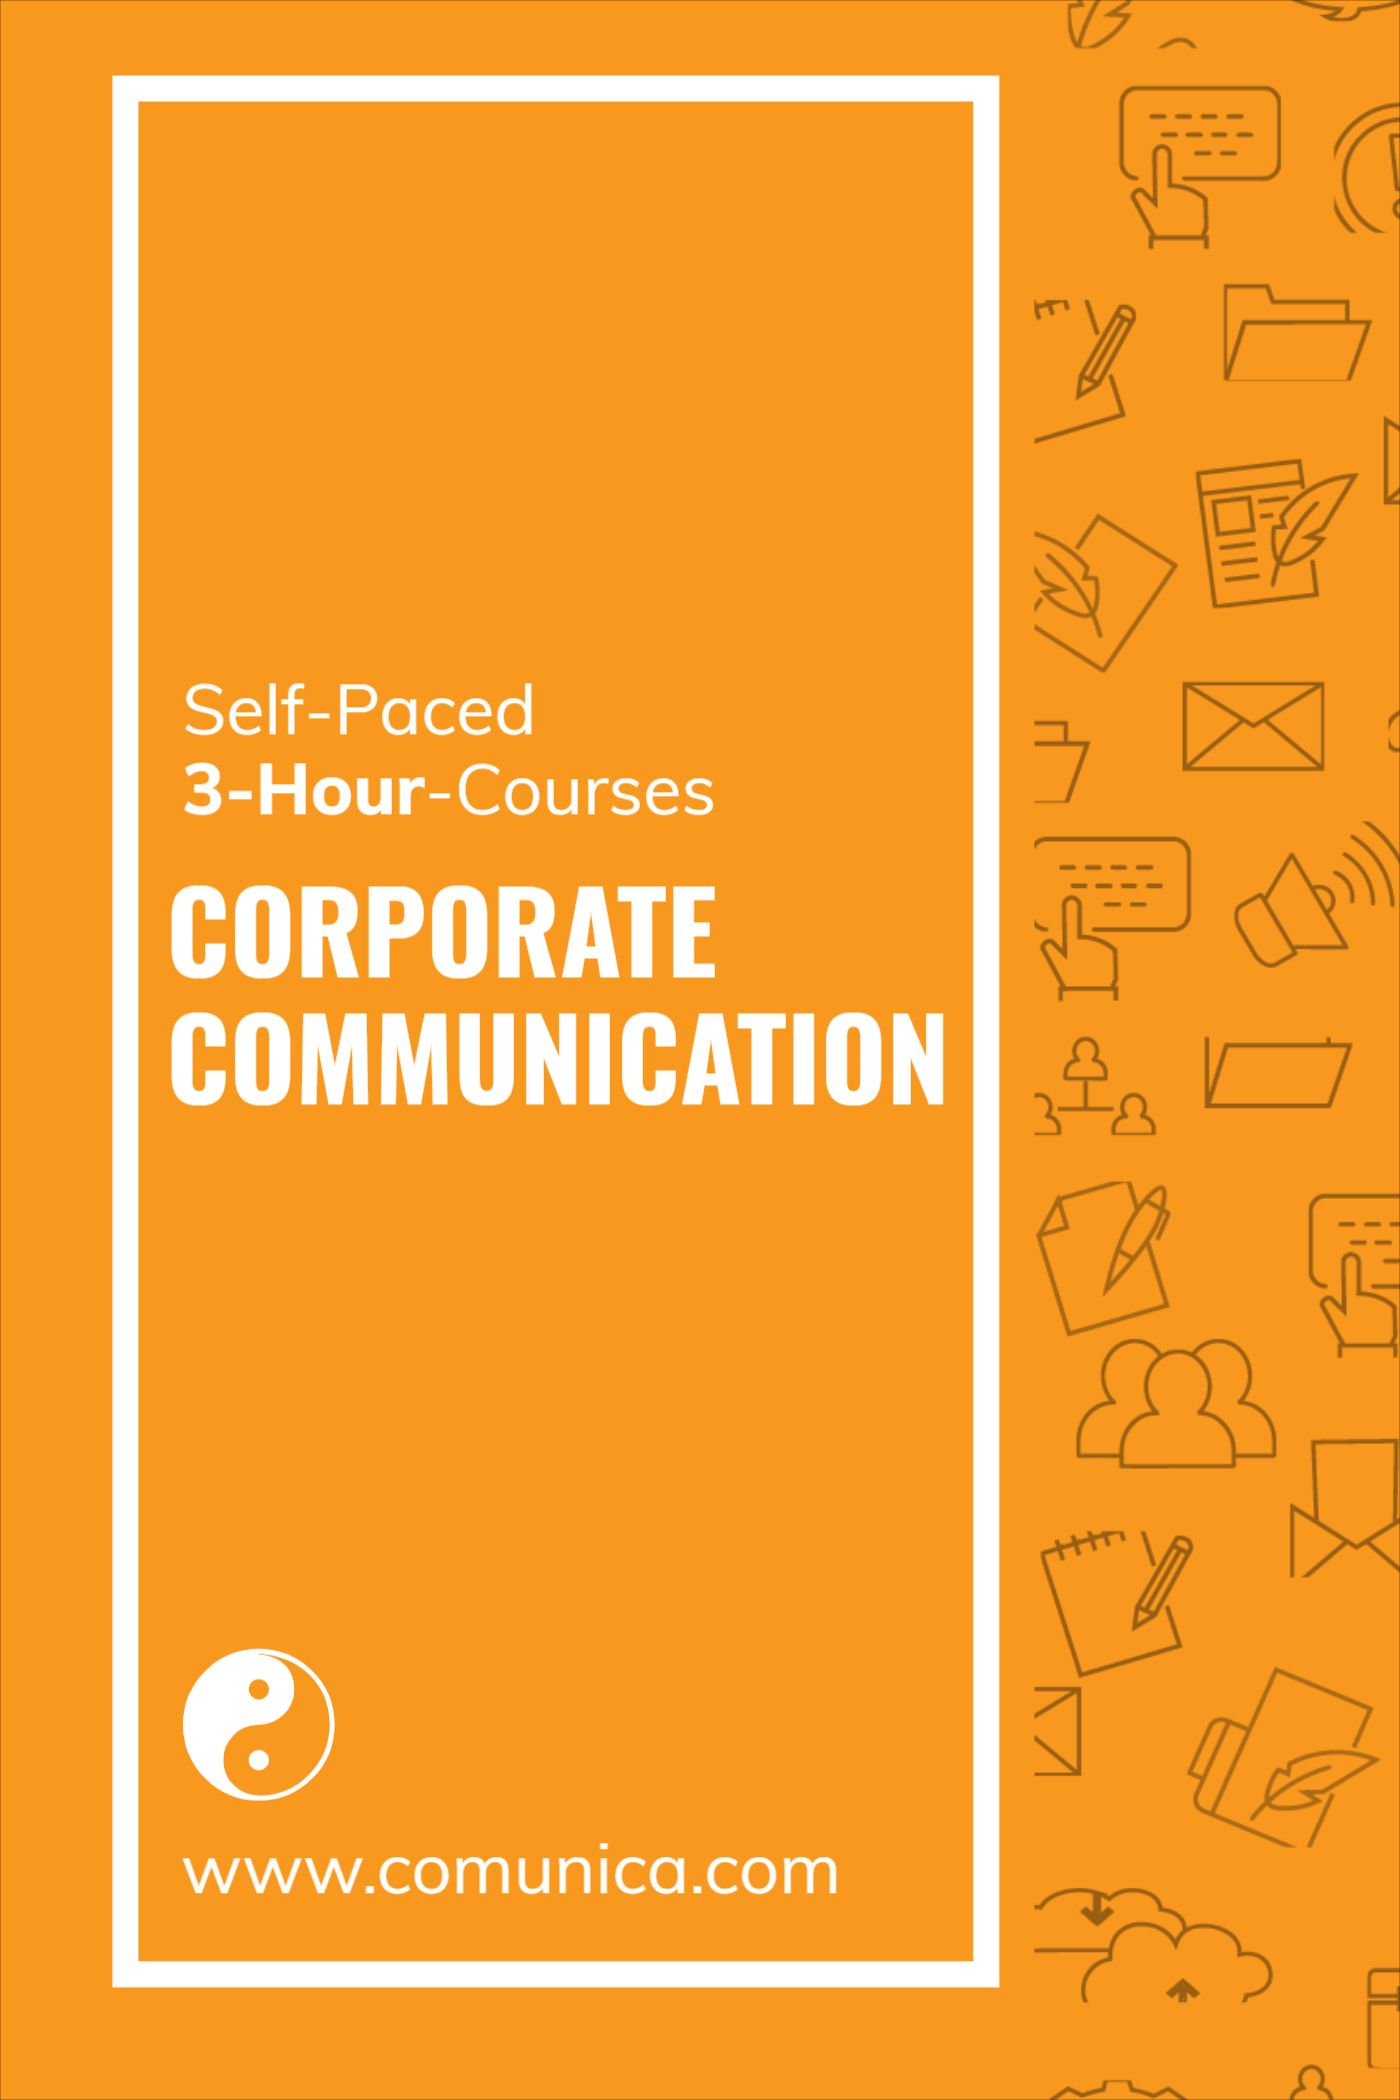 Corporate Communication Online Course Template